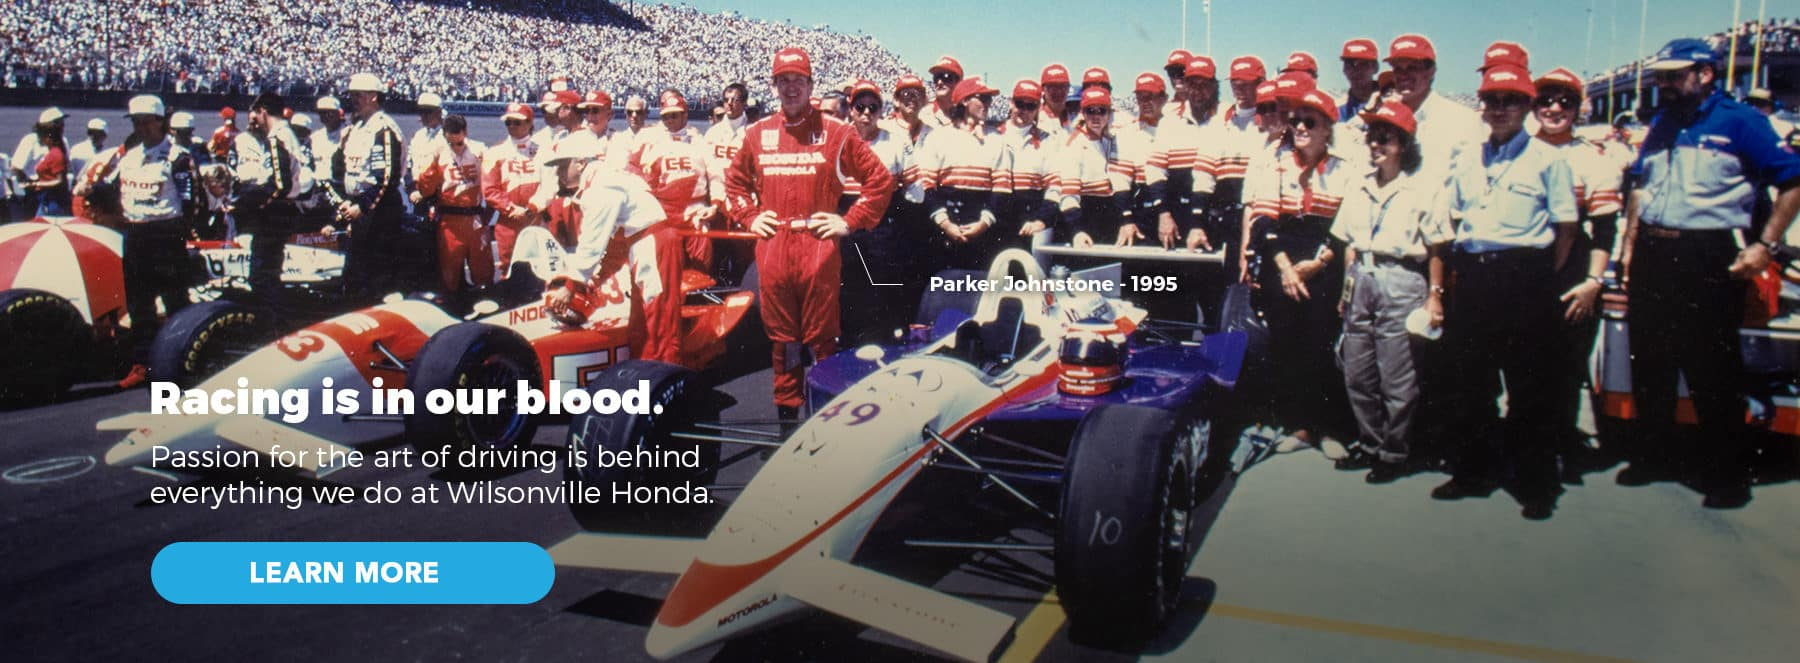 Indy500-05102021